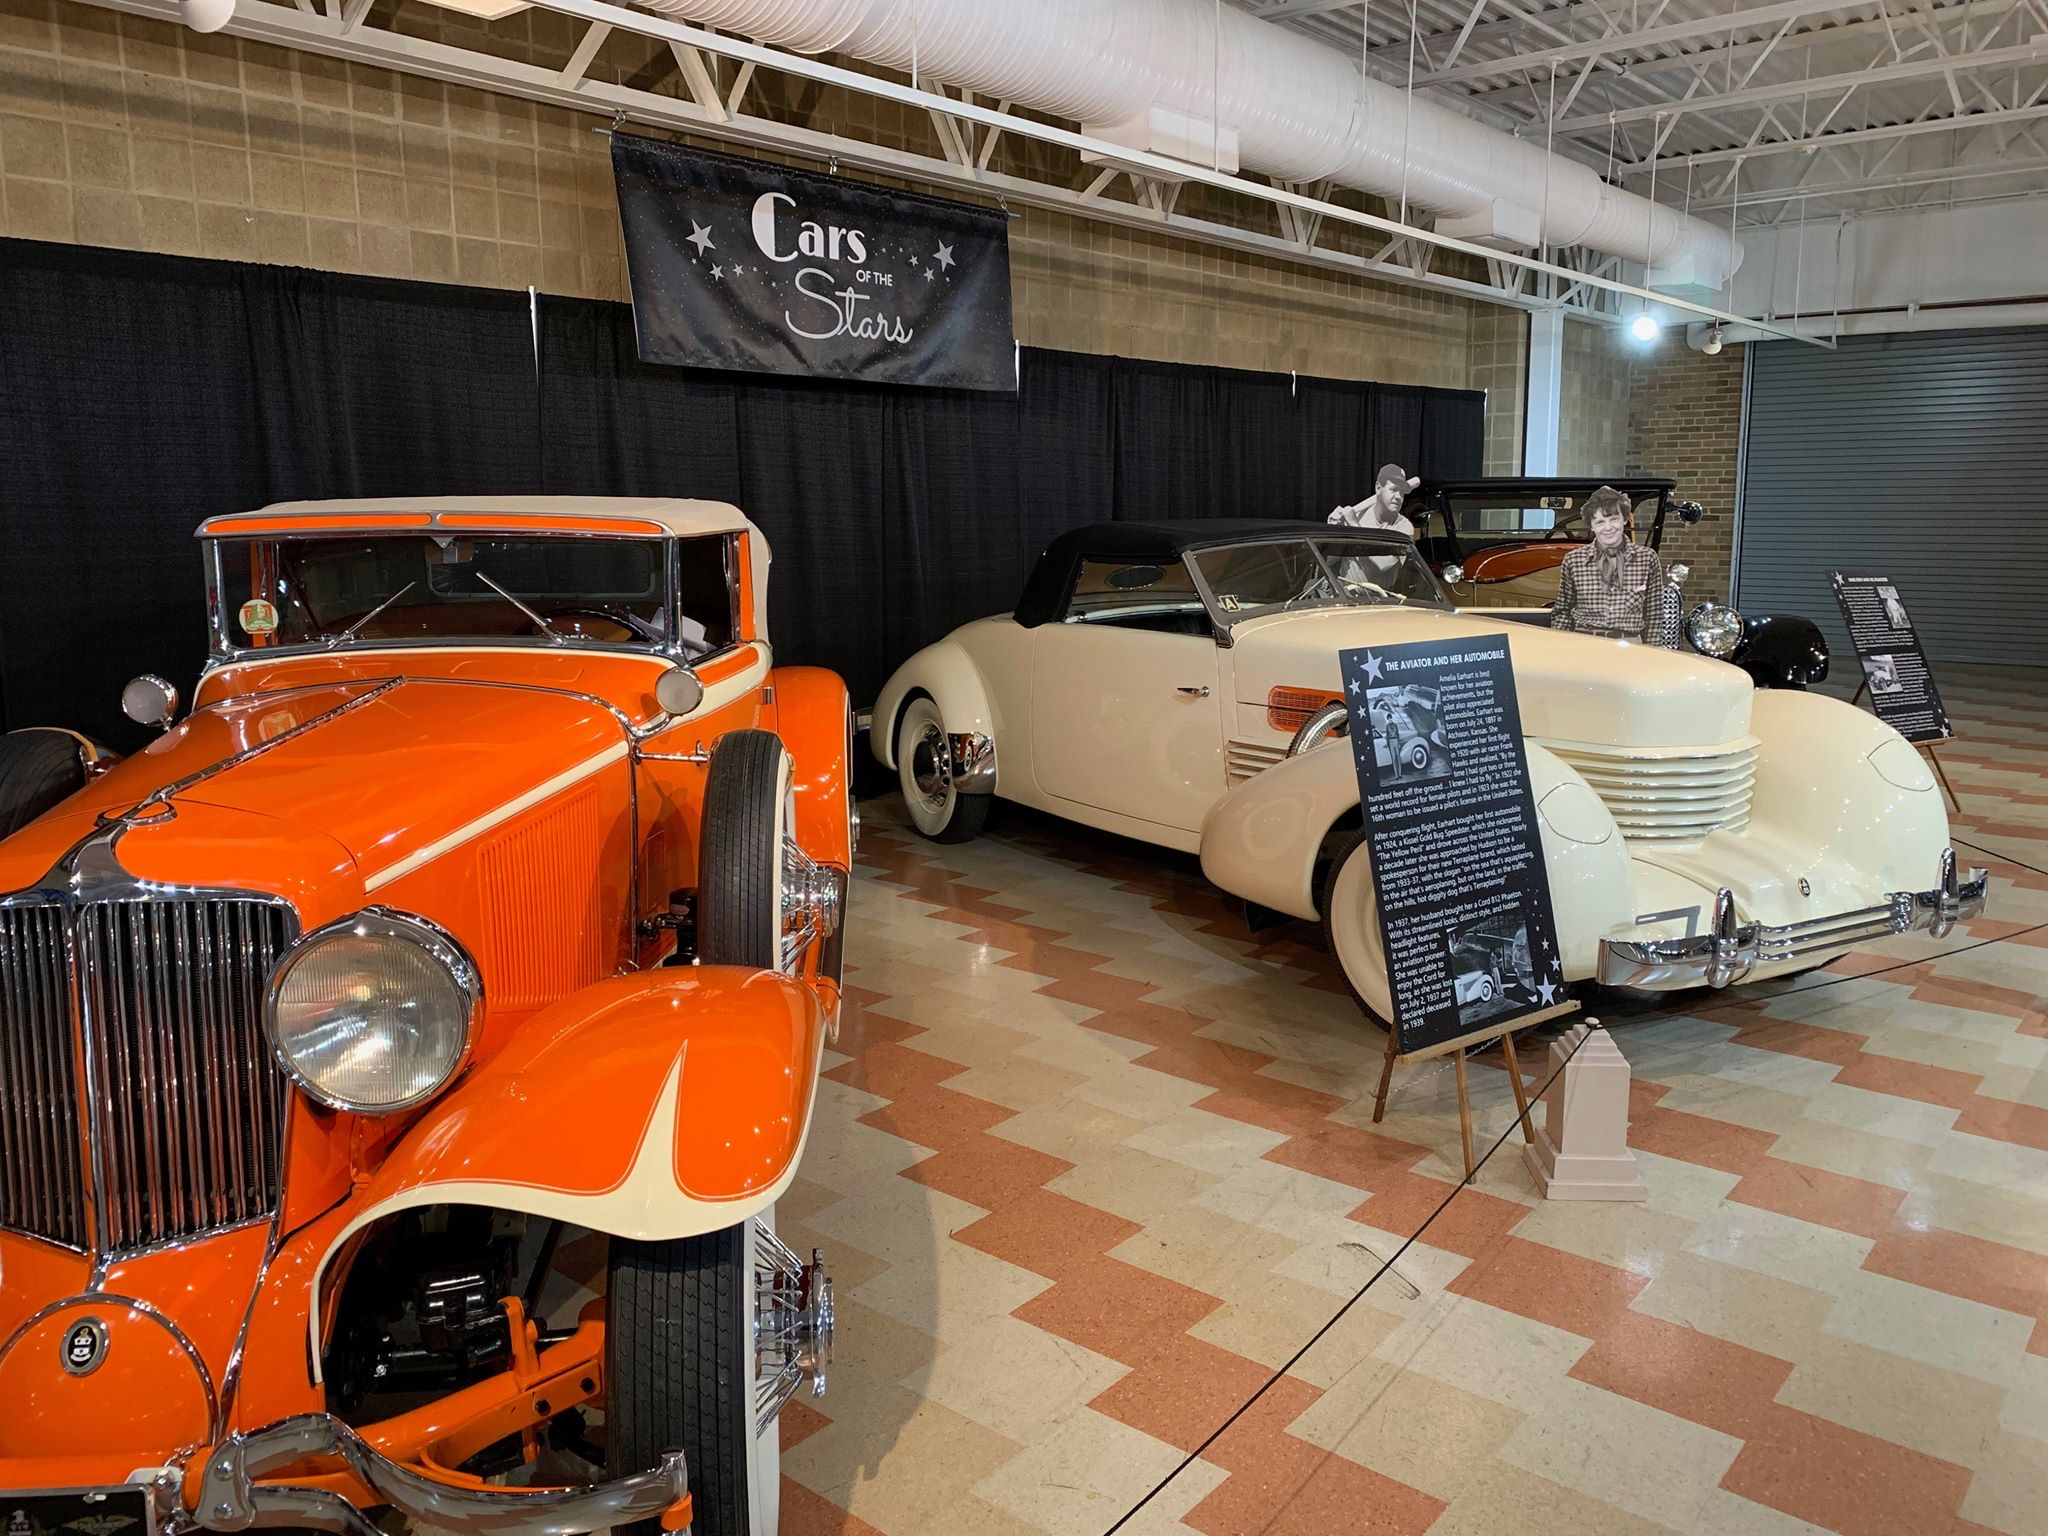 Indianapolis, Indy museum plans major expansion, ClassicCars.com Journal